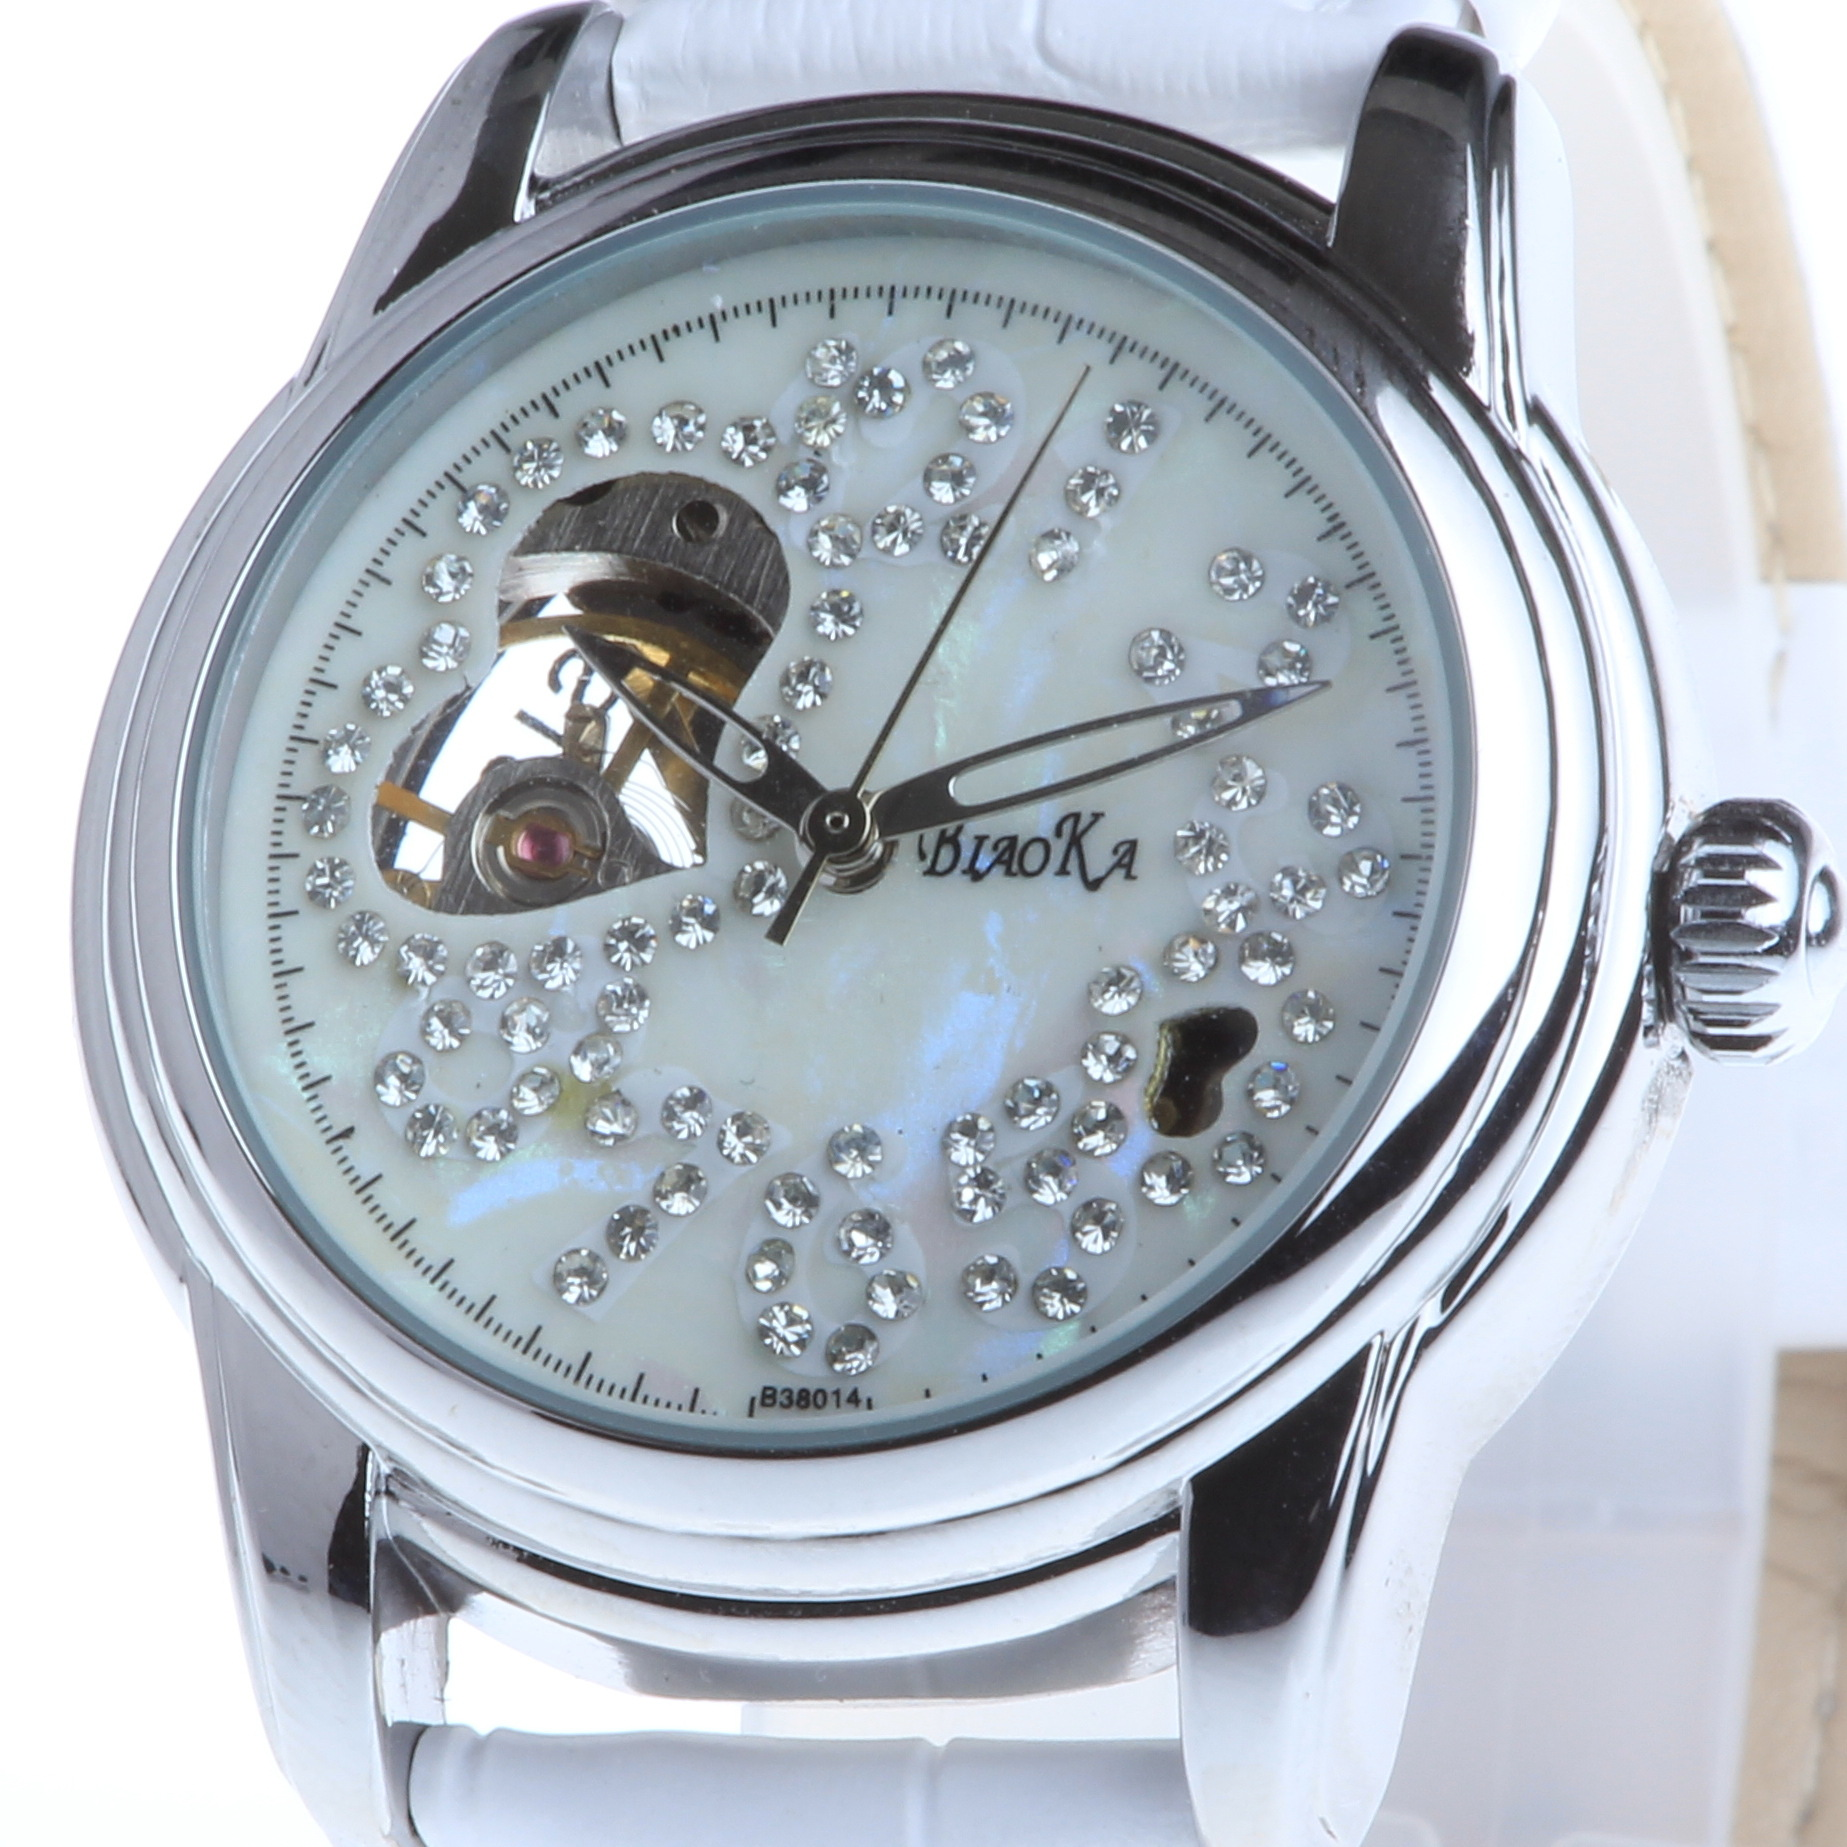 2016 New Arrival Luxury Brand BIAOKA women watches skeleton mechanical watch white leather ladies casual clock